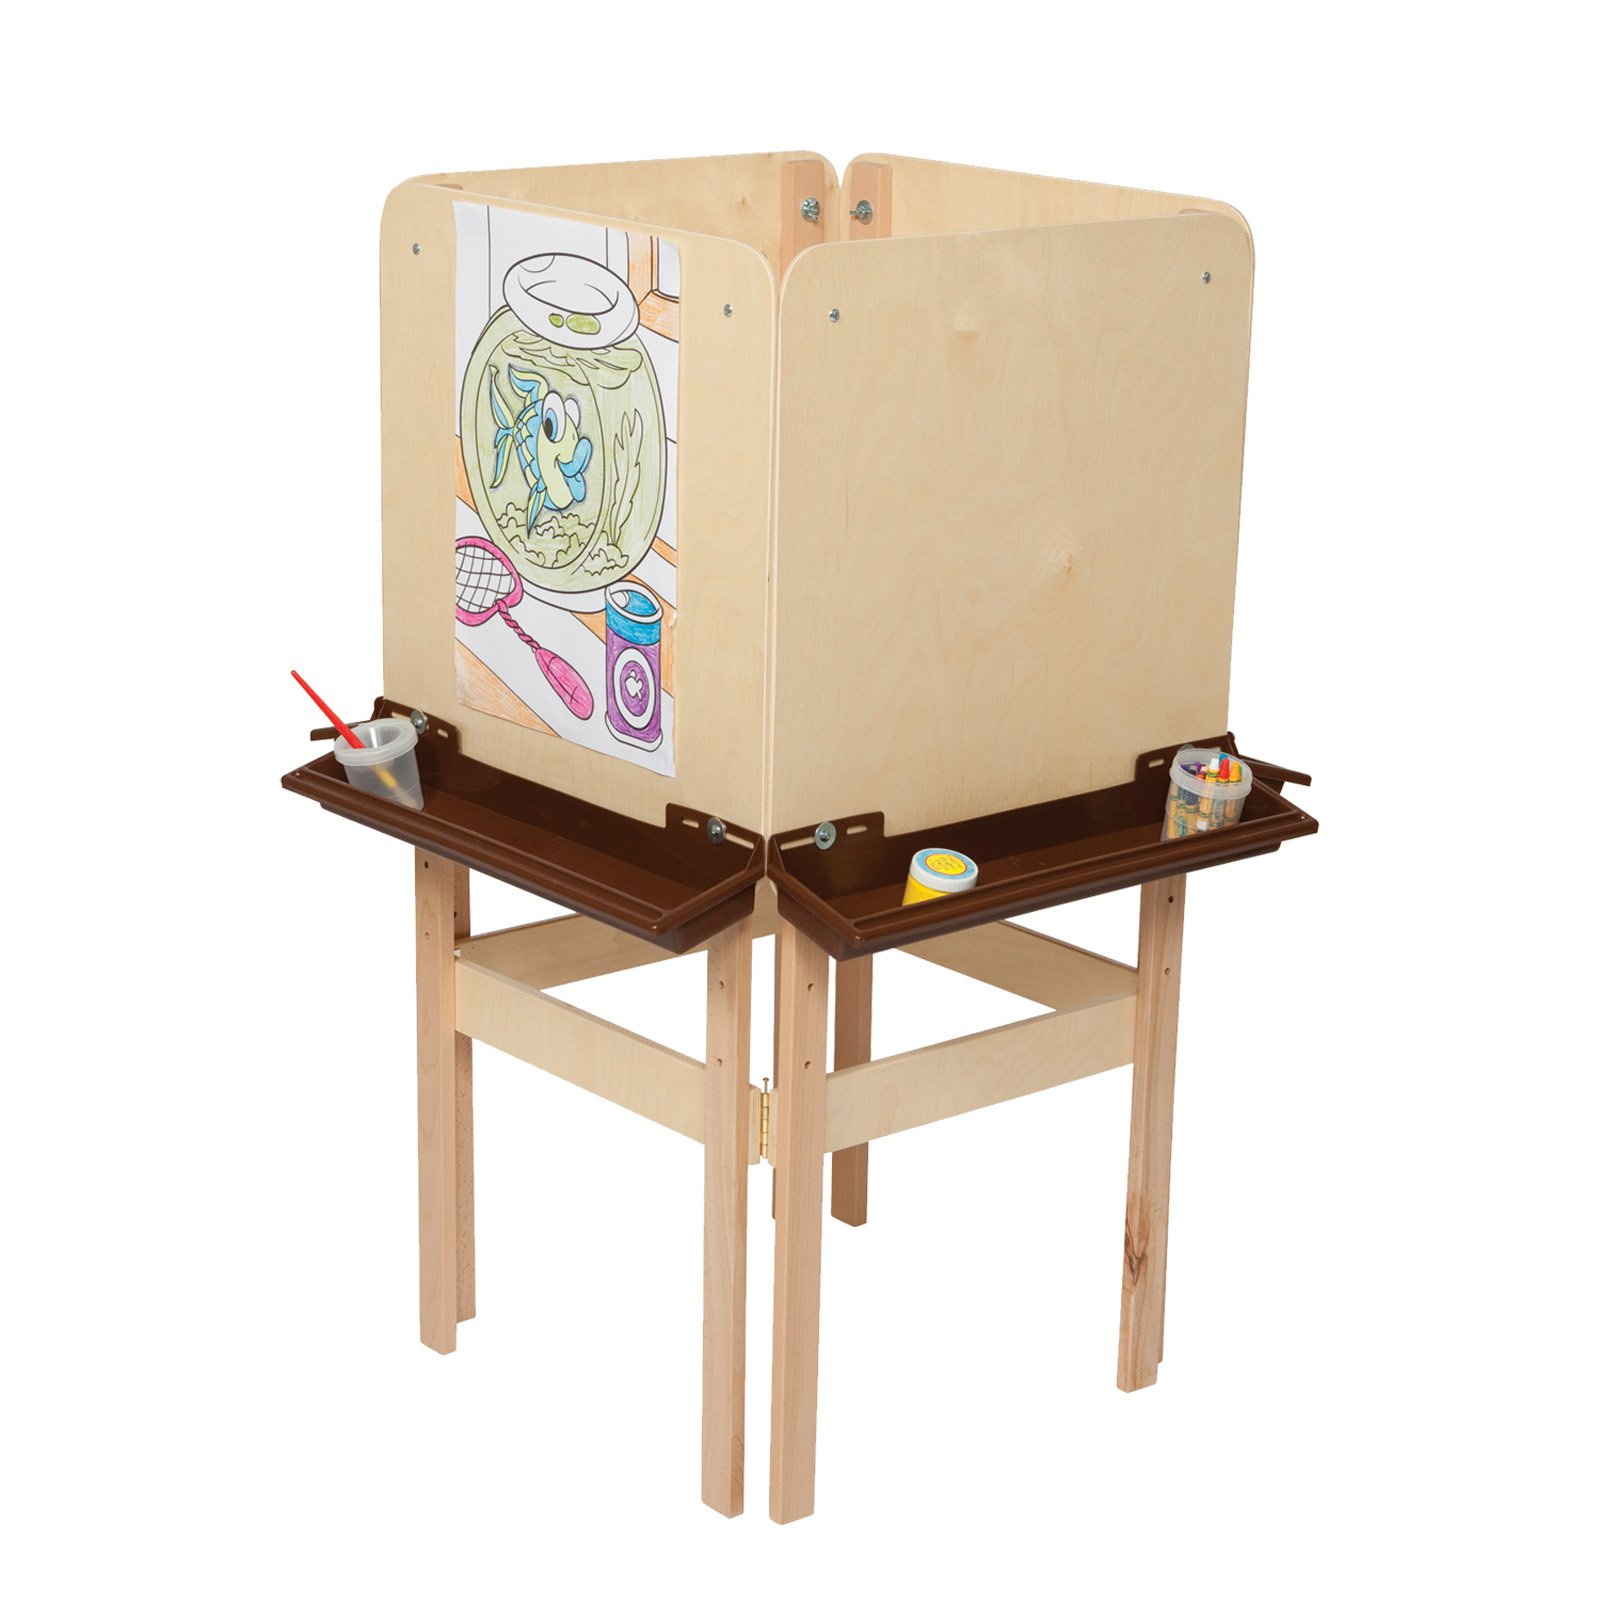 Wood Designs 4 Sided Easel with Plywood and Brown Trays